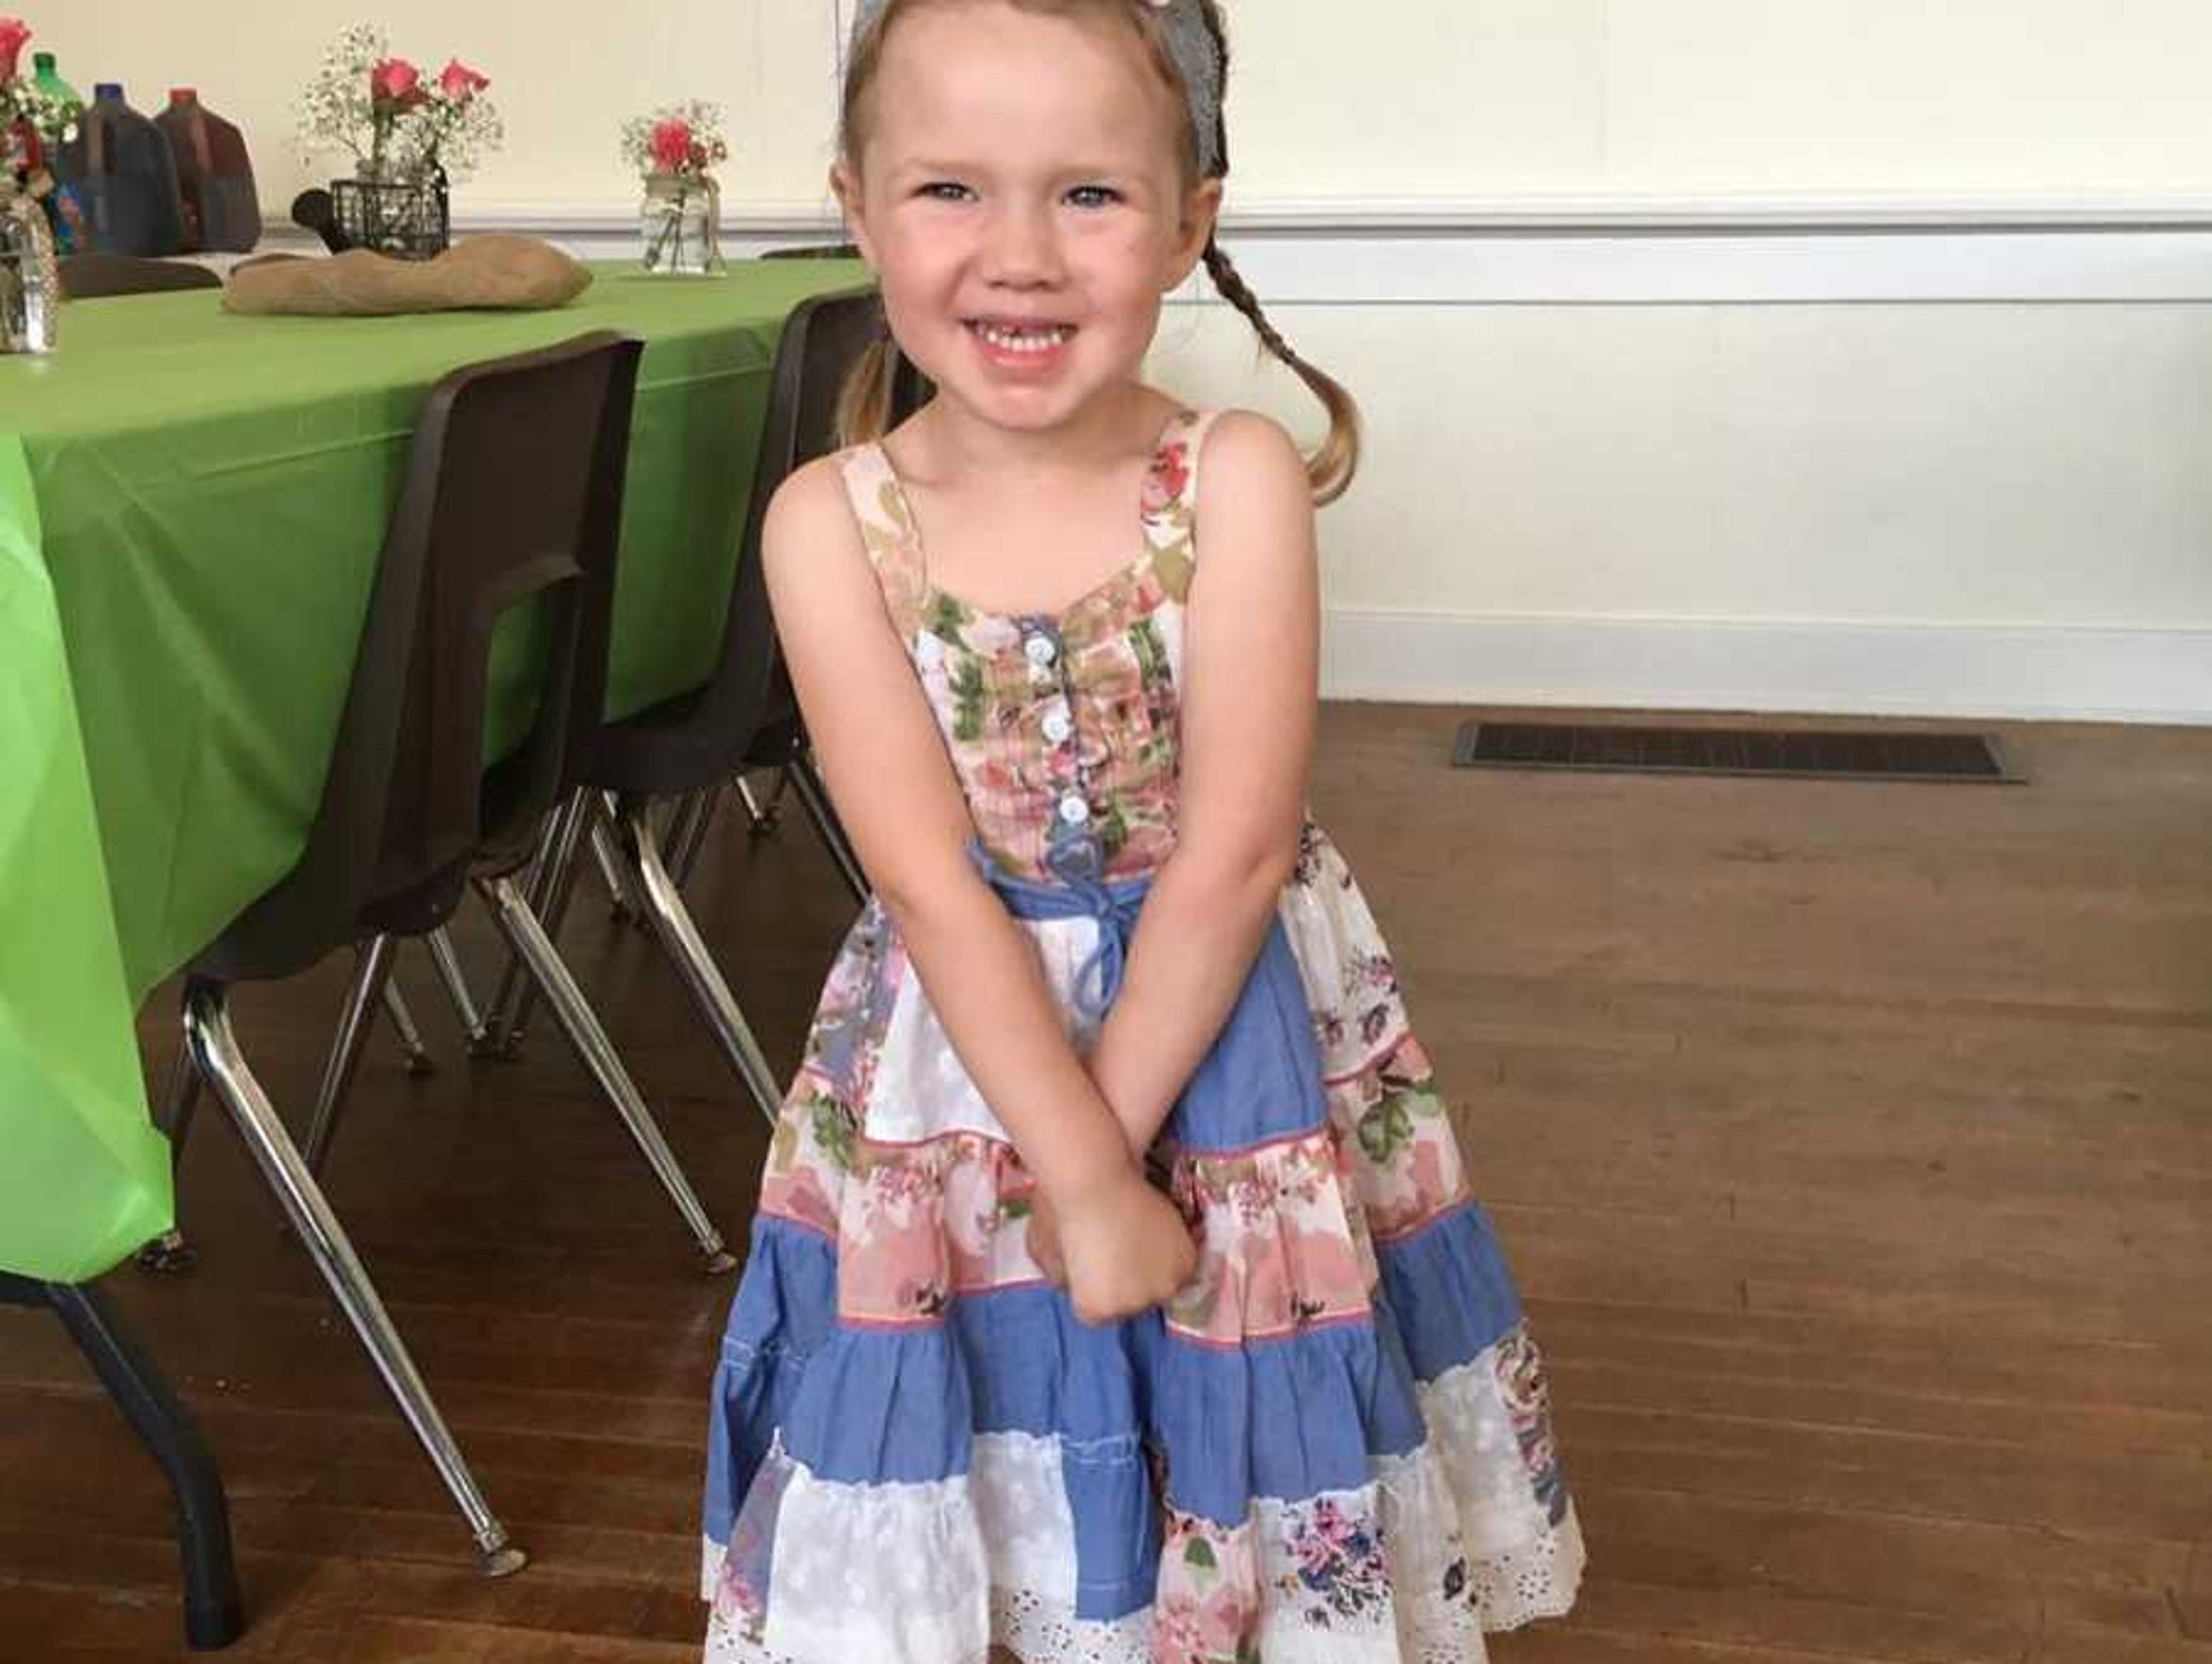 Addy is fighting DIPG. Treatments have stopped working.